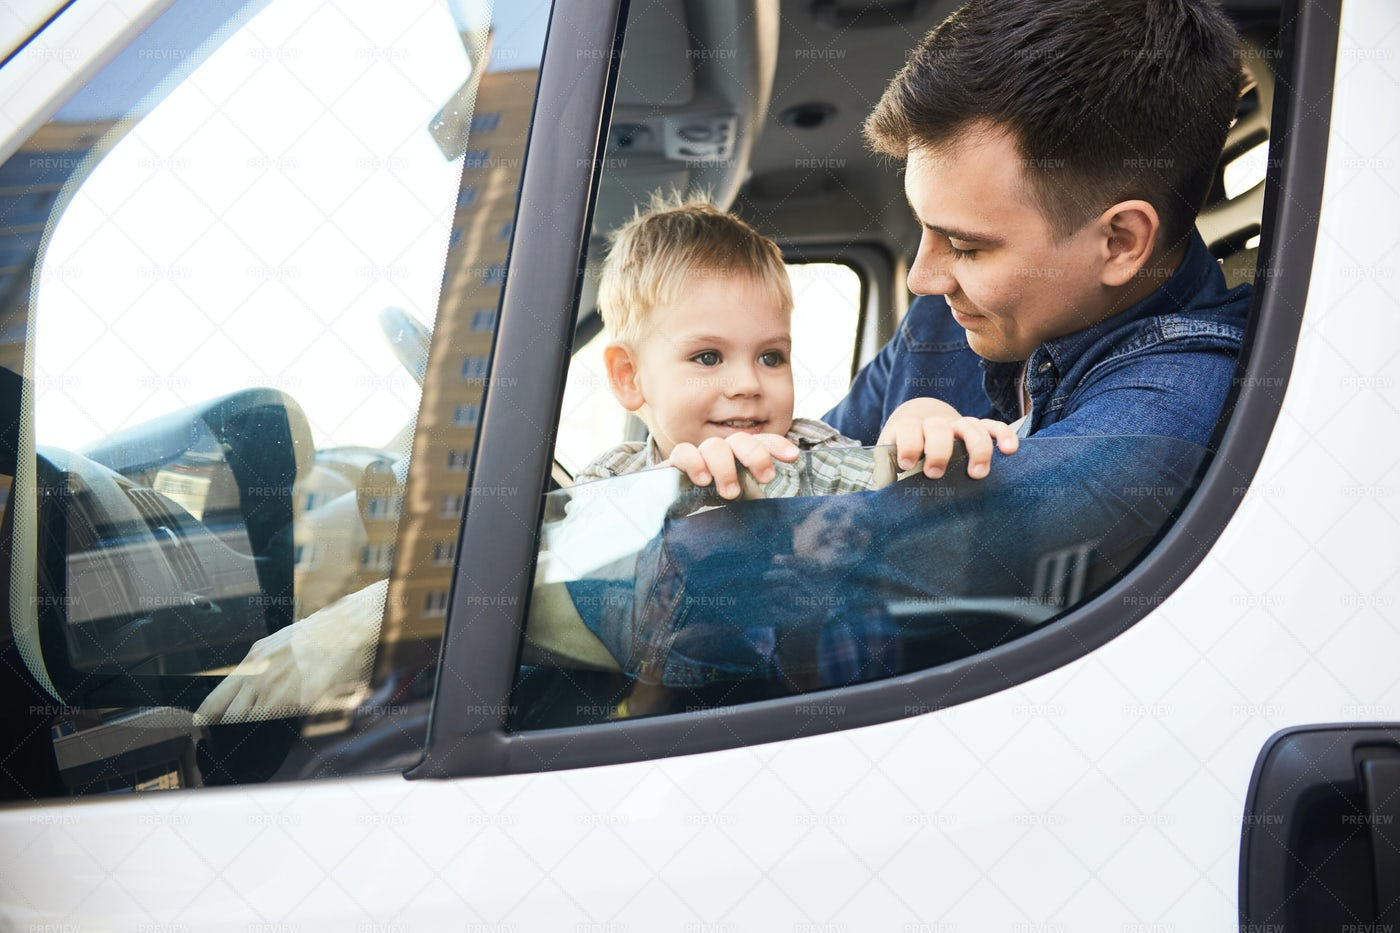 Father And Son In Car: Stock Photos